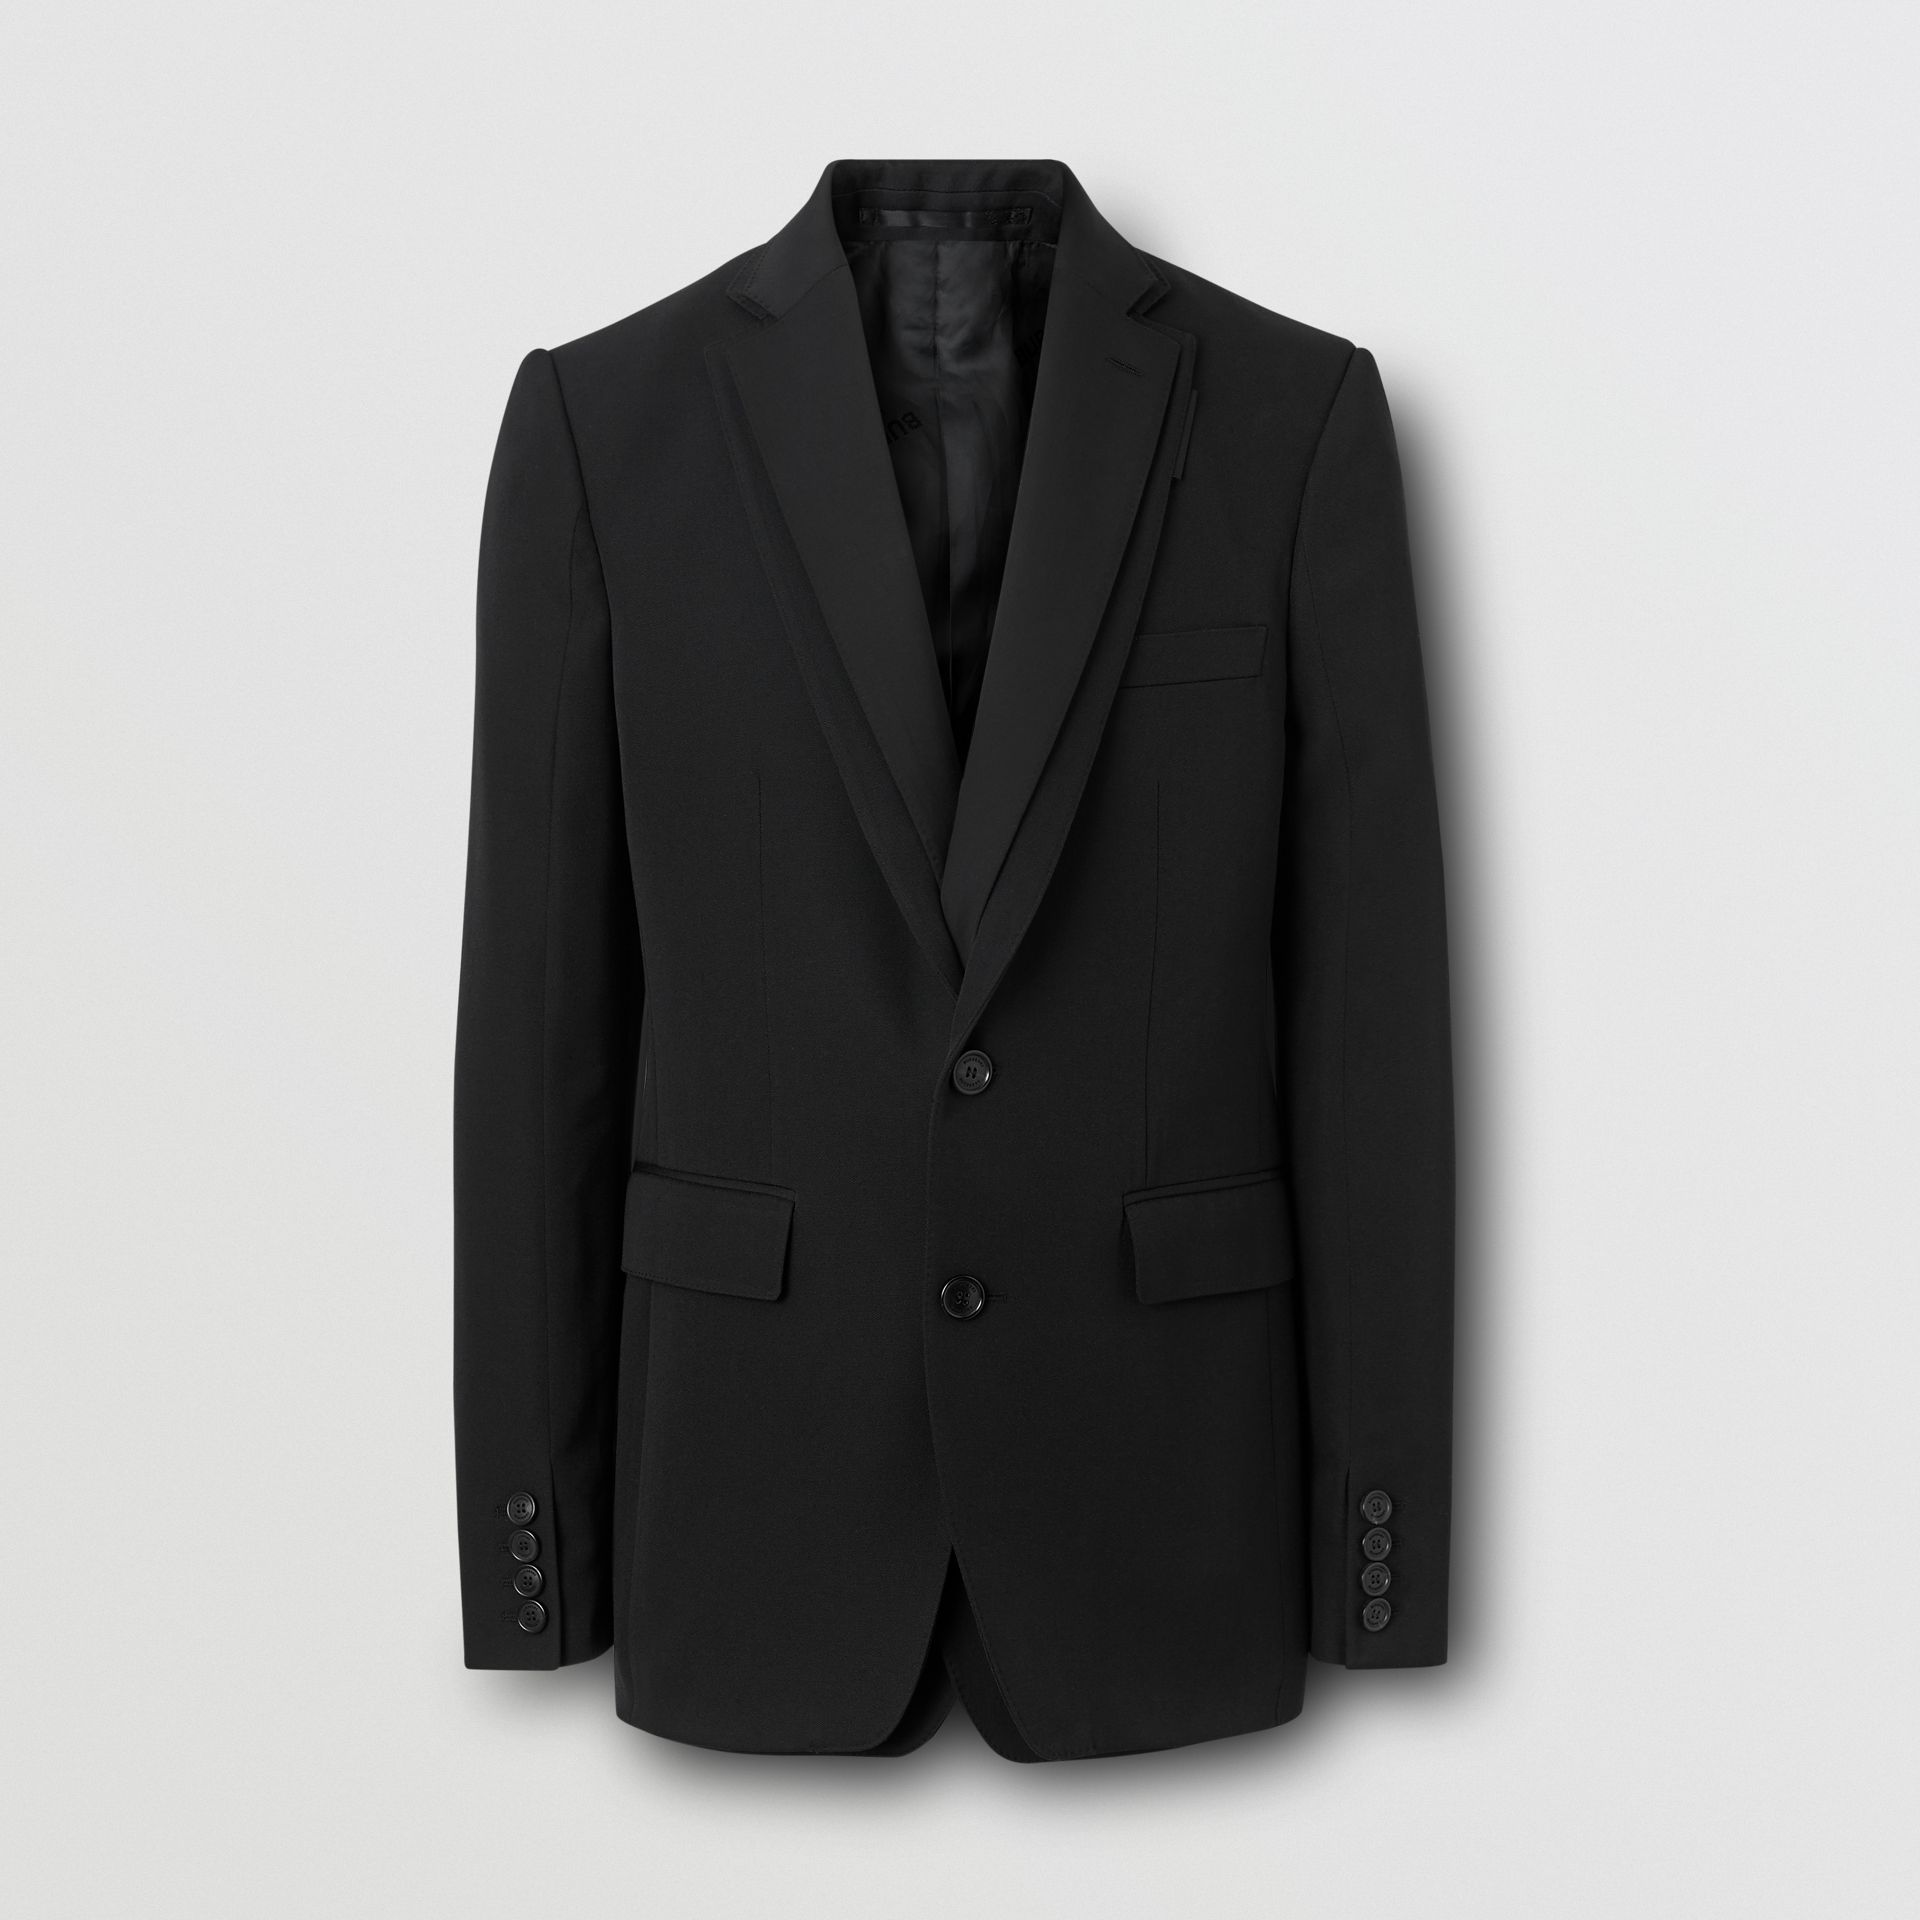 English Fit Reconstructed Wool Tailored Jacket in Black - Men | Burberry - gallery image 3